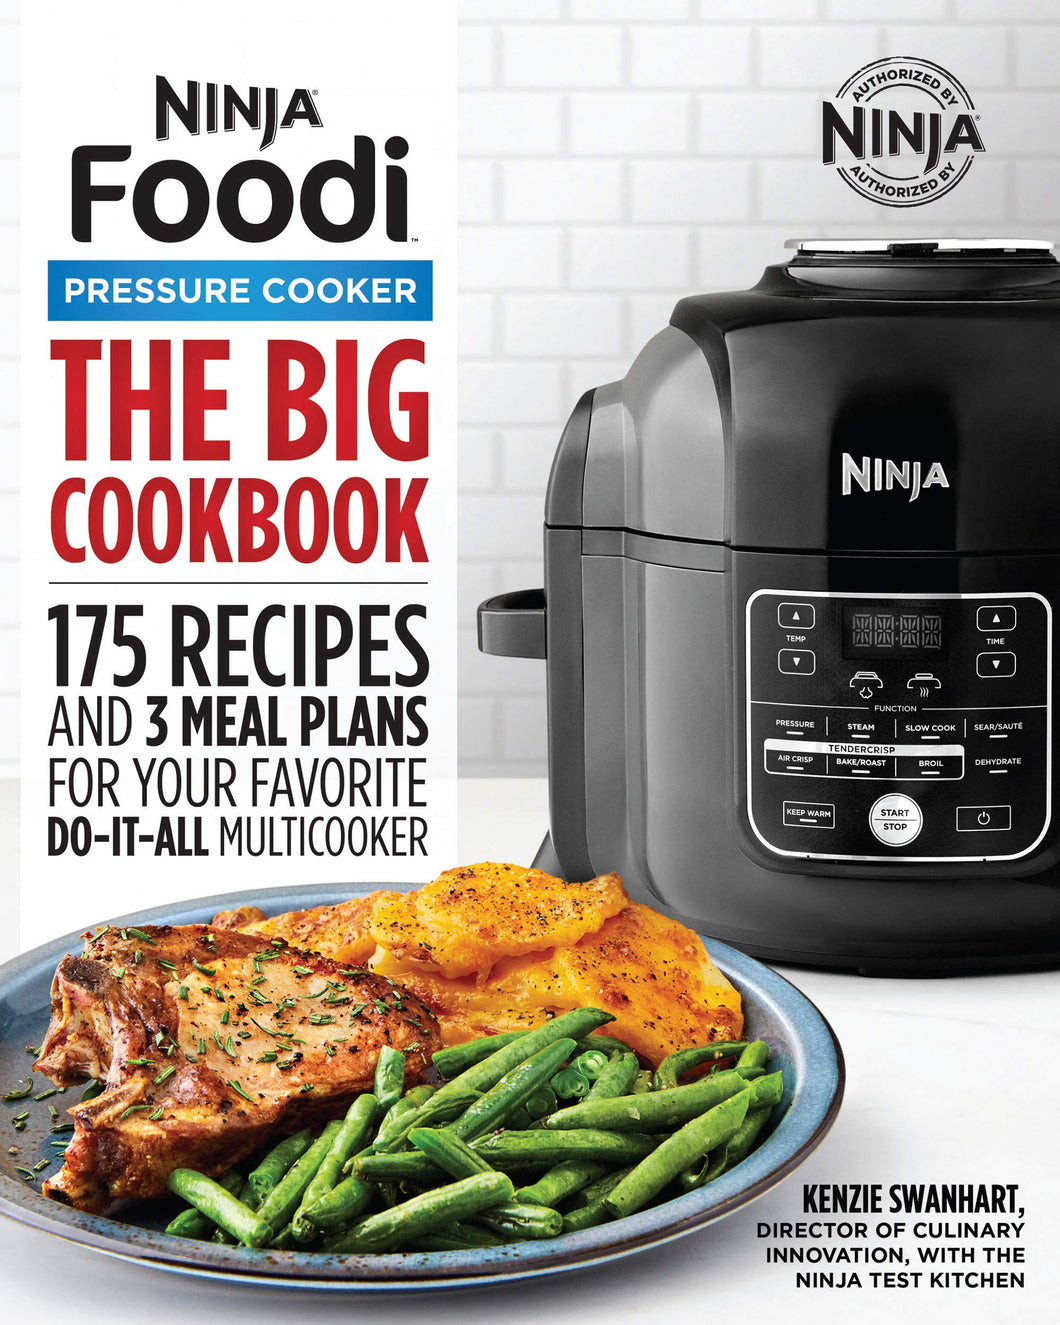 The Big Ninja Foodi Pressure Cooker Cookbook: 175 Recipes and 3 Meal Plans for Your Favorite Do-It-All Multicooker - Tolerant Planet